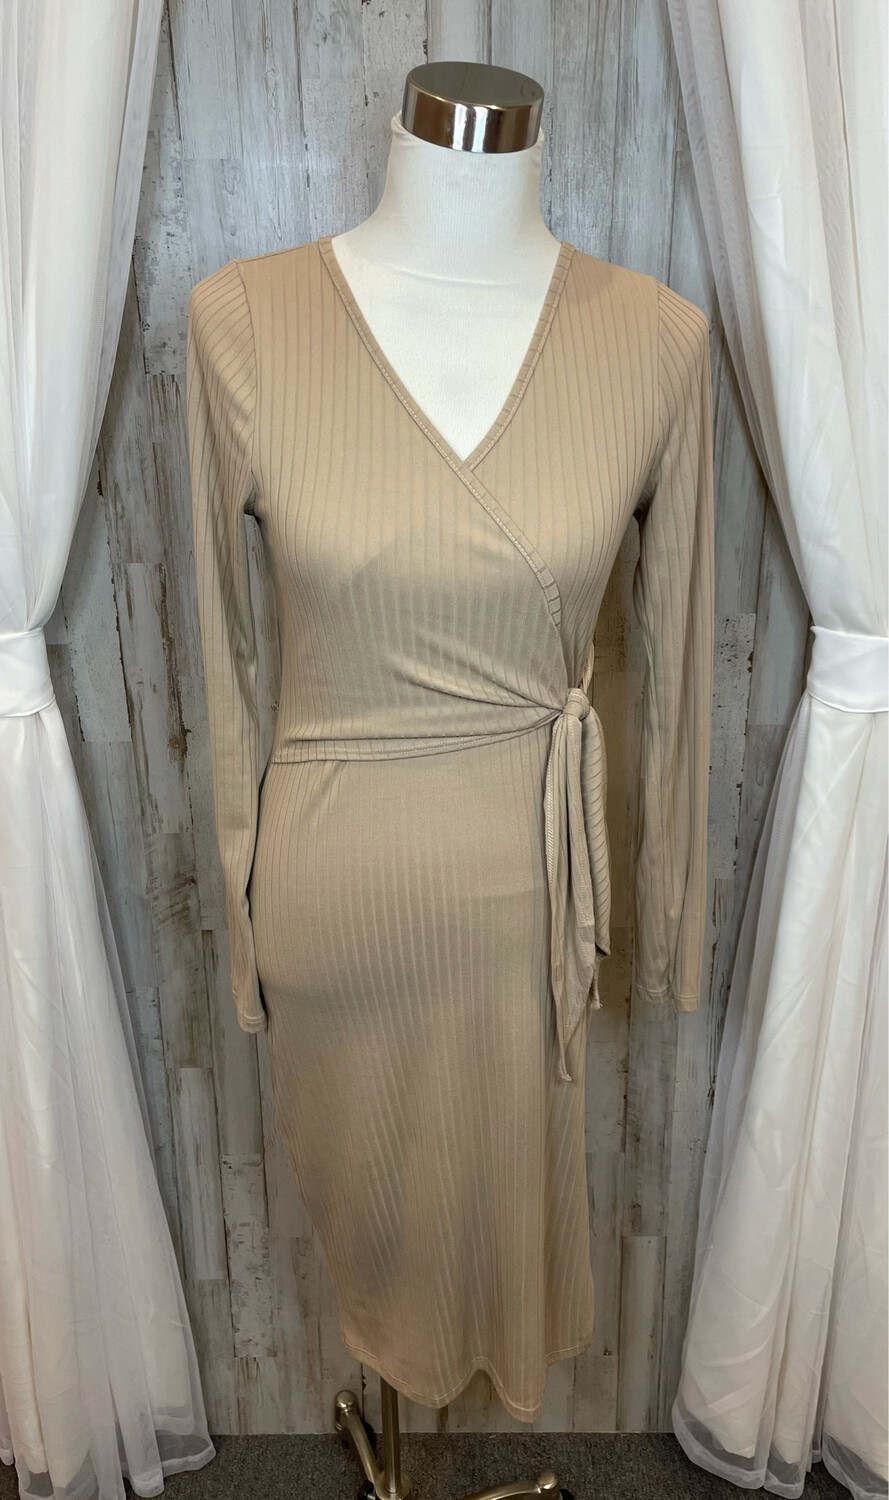 Pink Lily Camel Ribbed Dress w/Tie - S